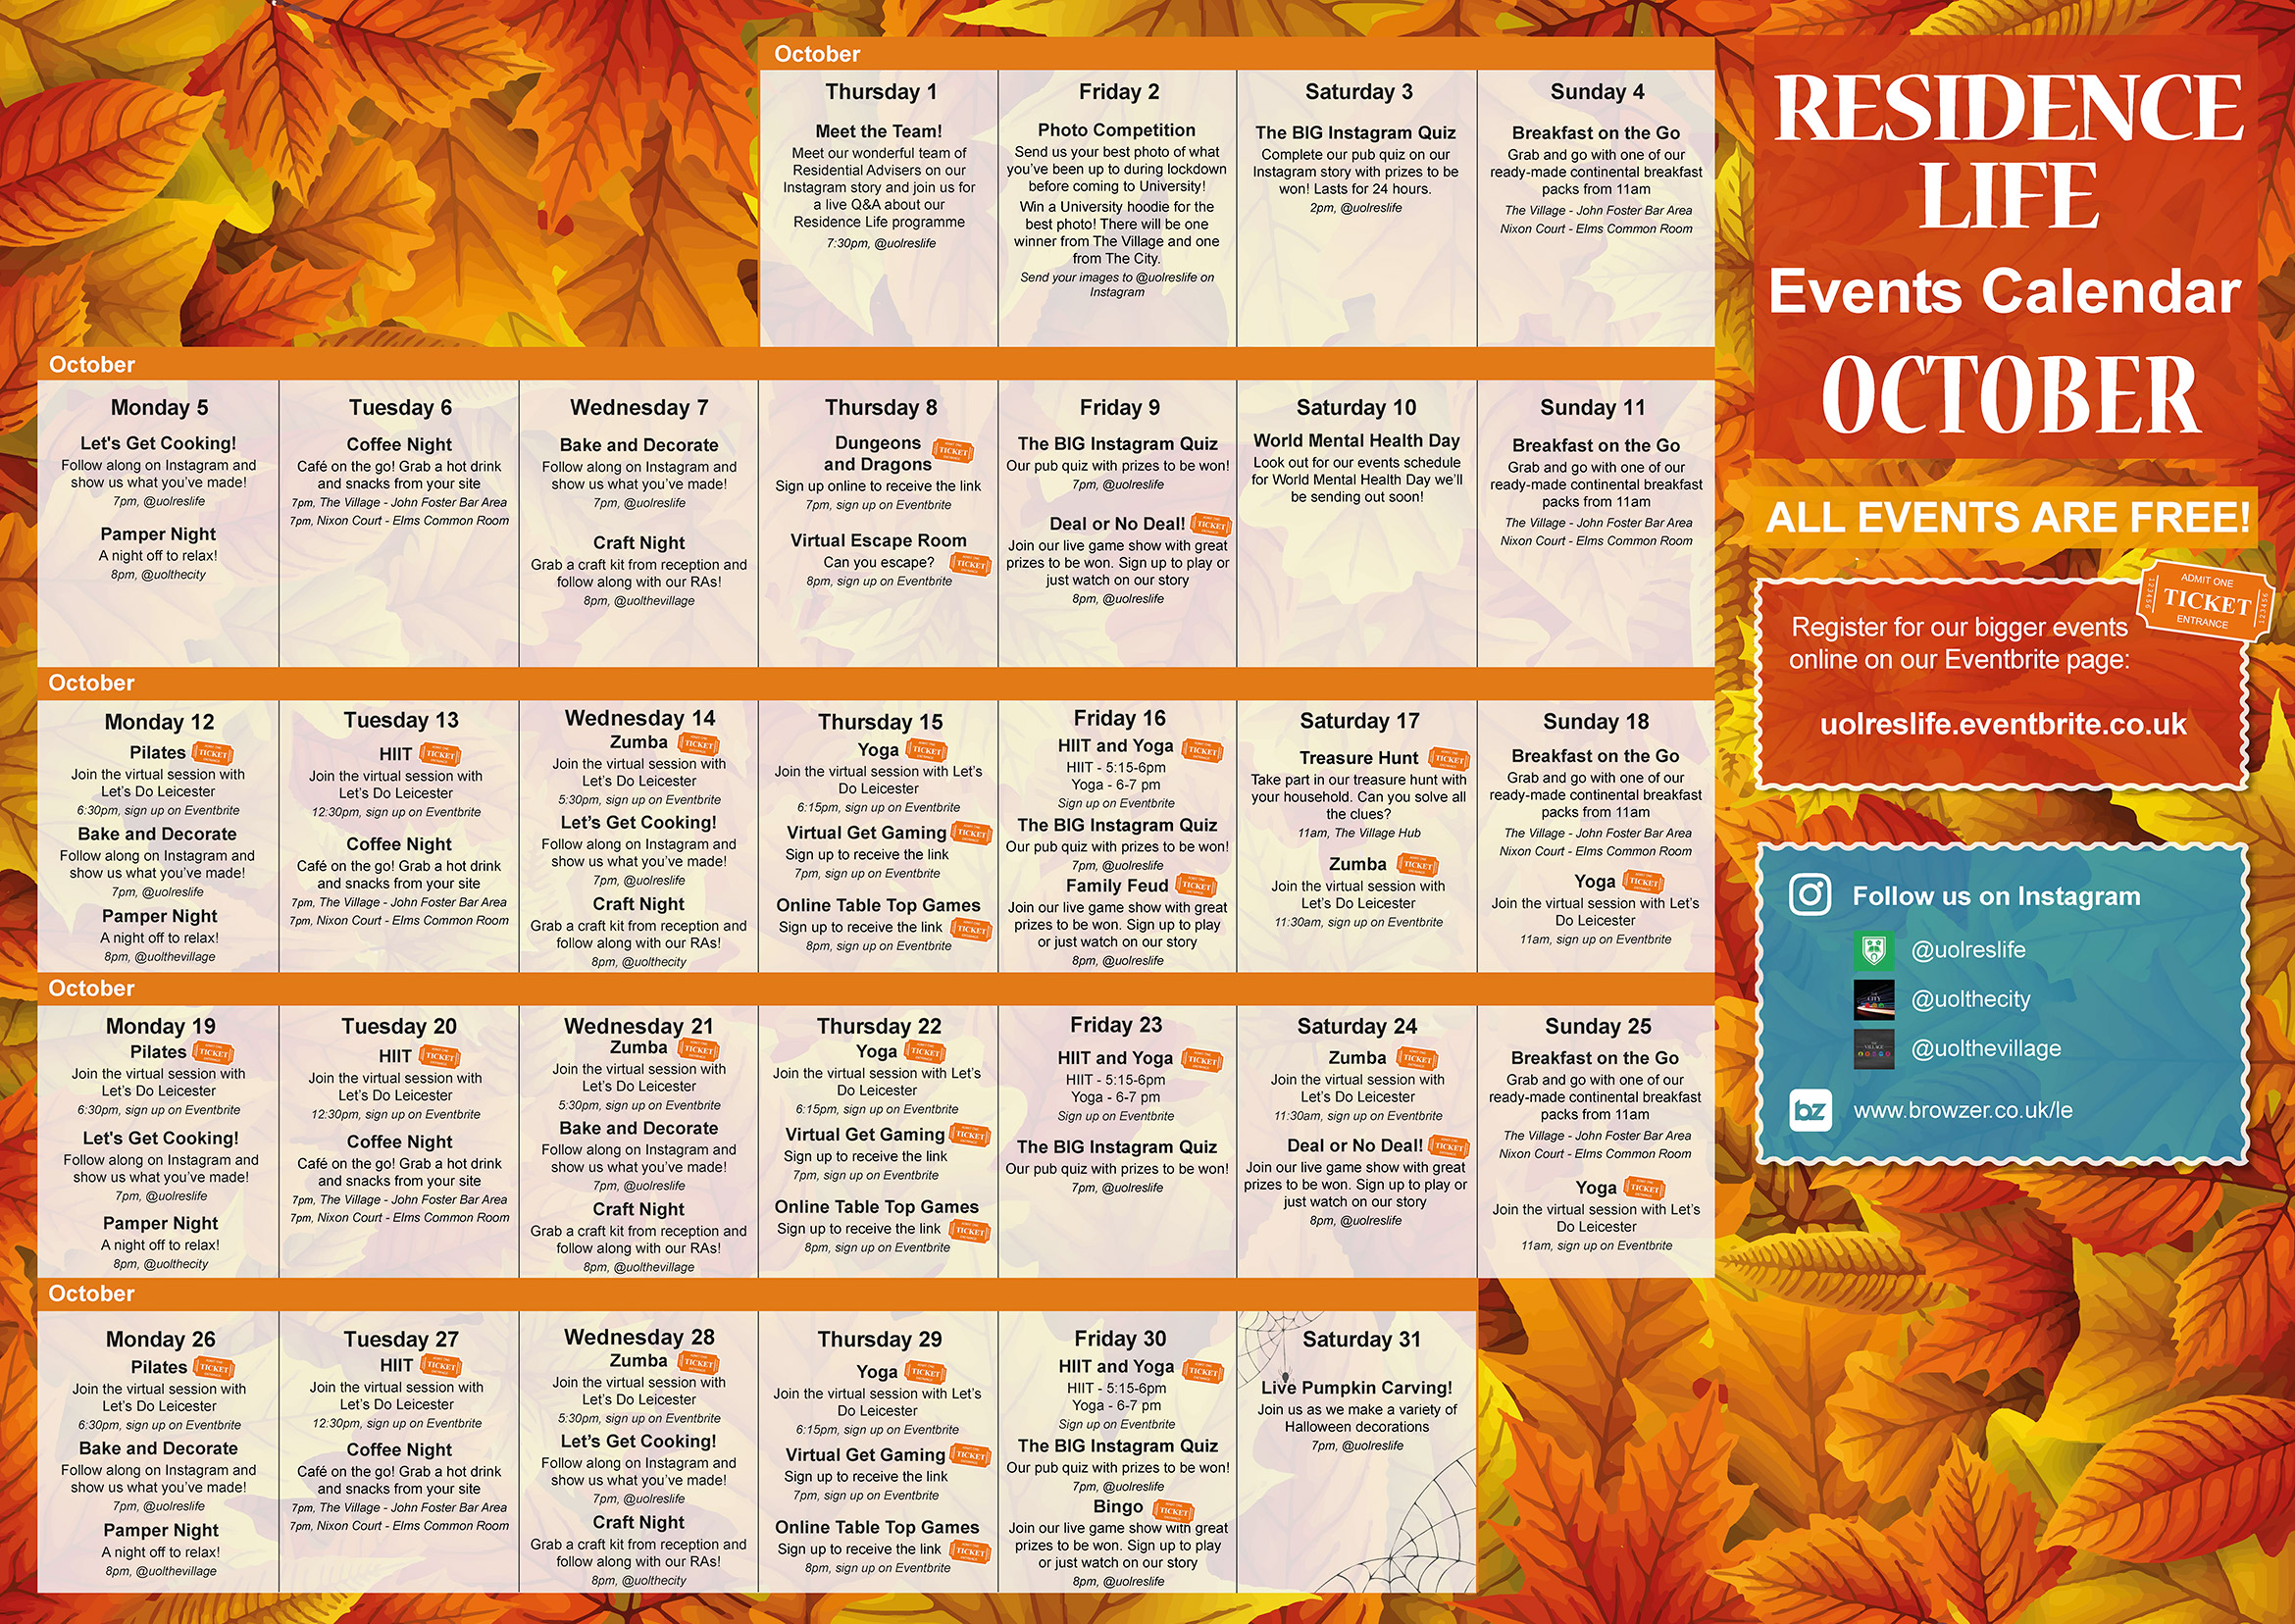 Residence Life October Events Calendar